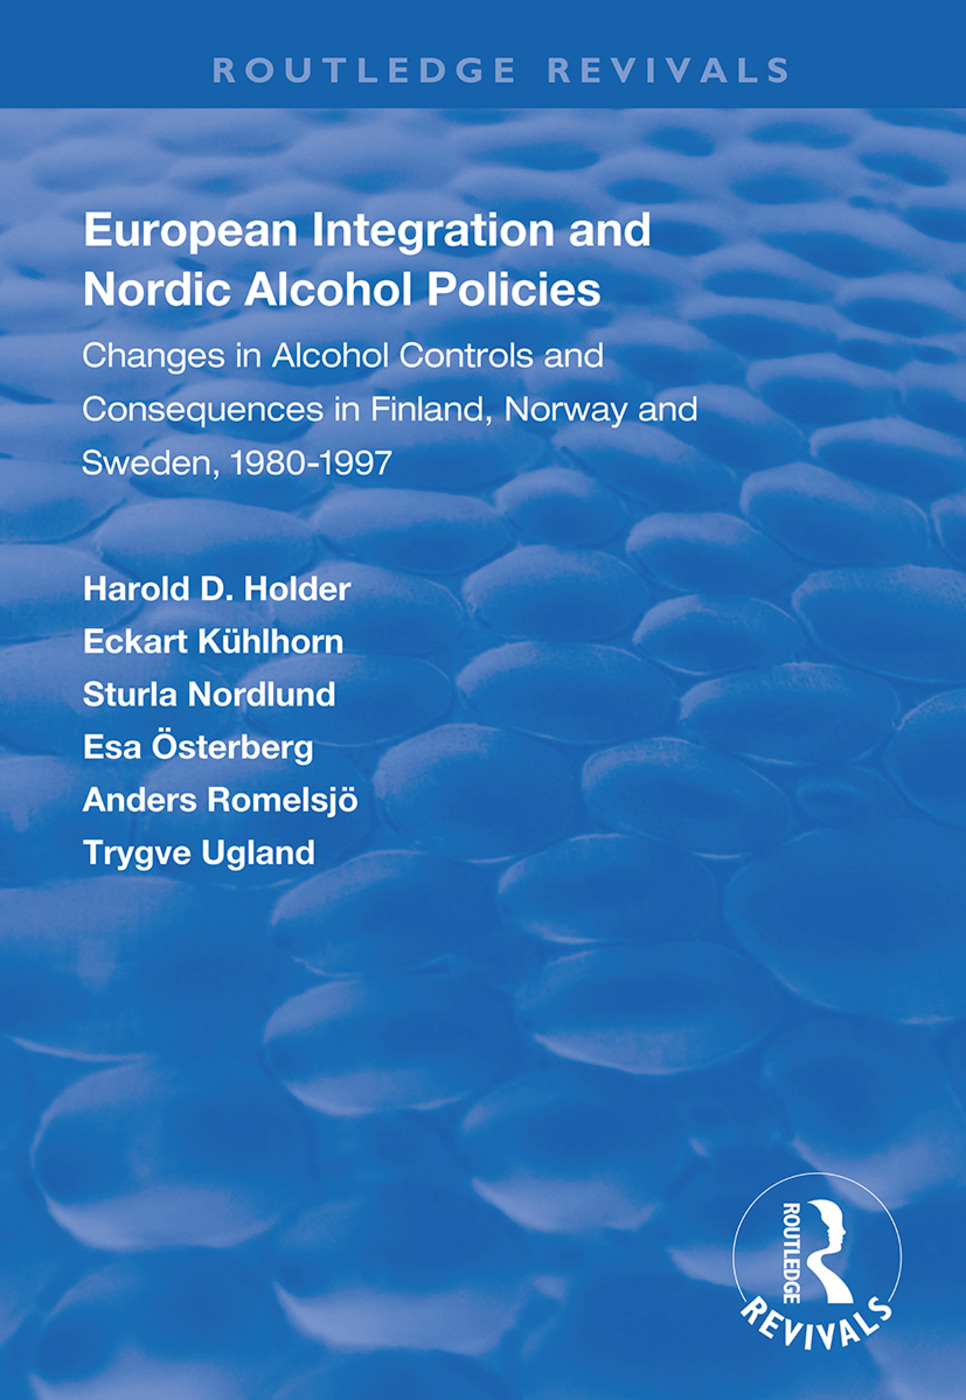 European Integration and Nordic Alcohol Policies: Changes in Alcohol Controls and Consequences in Finland, Norway and Sweden, 1980-97 book cover